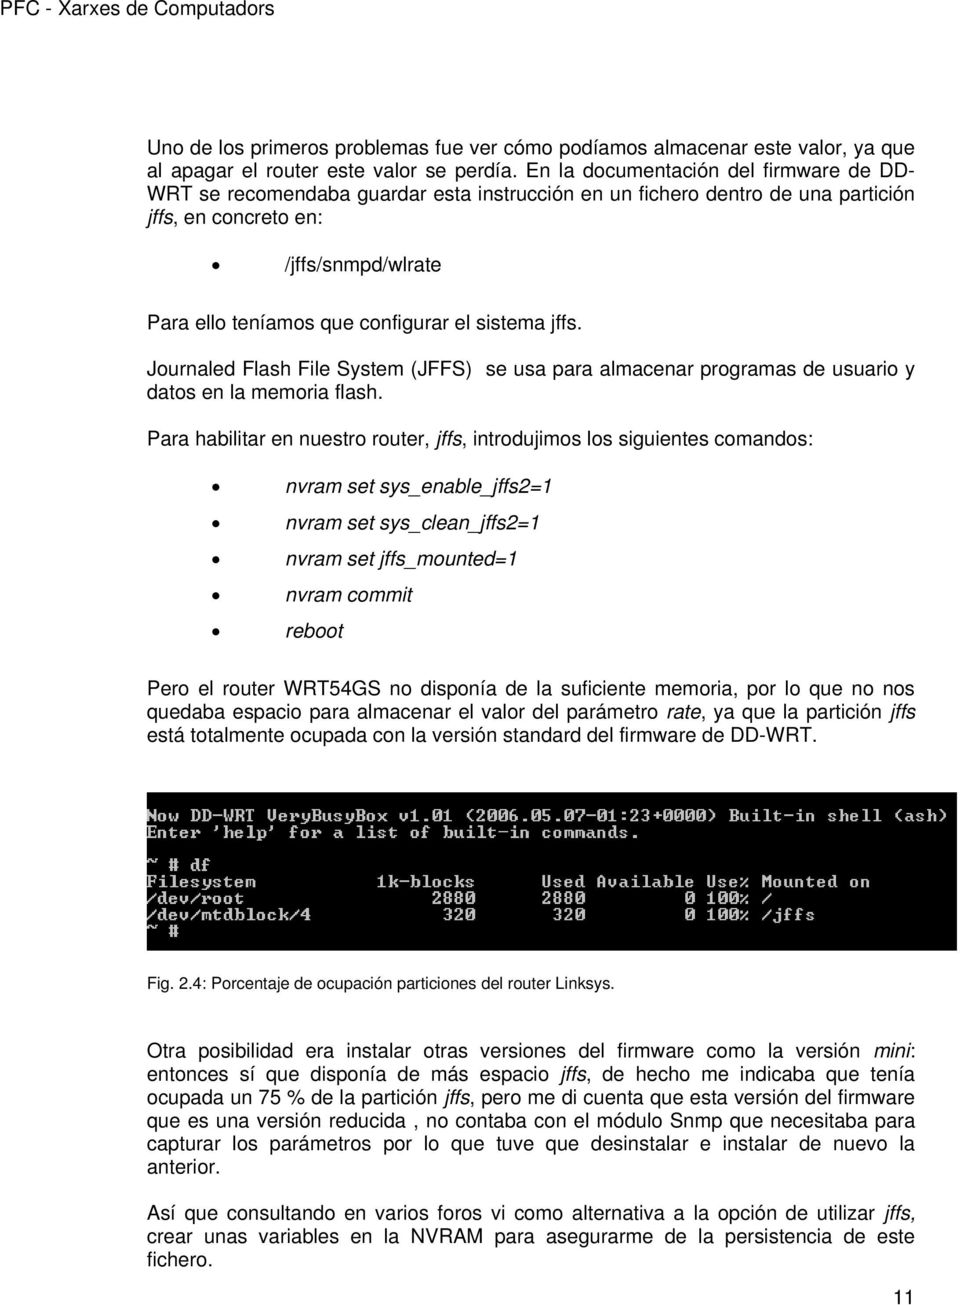 sistema jffs. Journaled Flash File System (JFFS) se usa para almacenar programas de usuario y datos en la memoria flash.